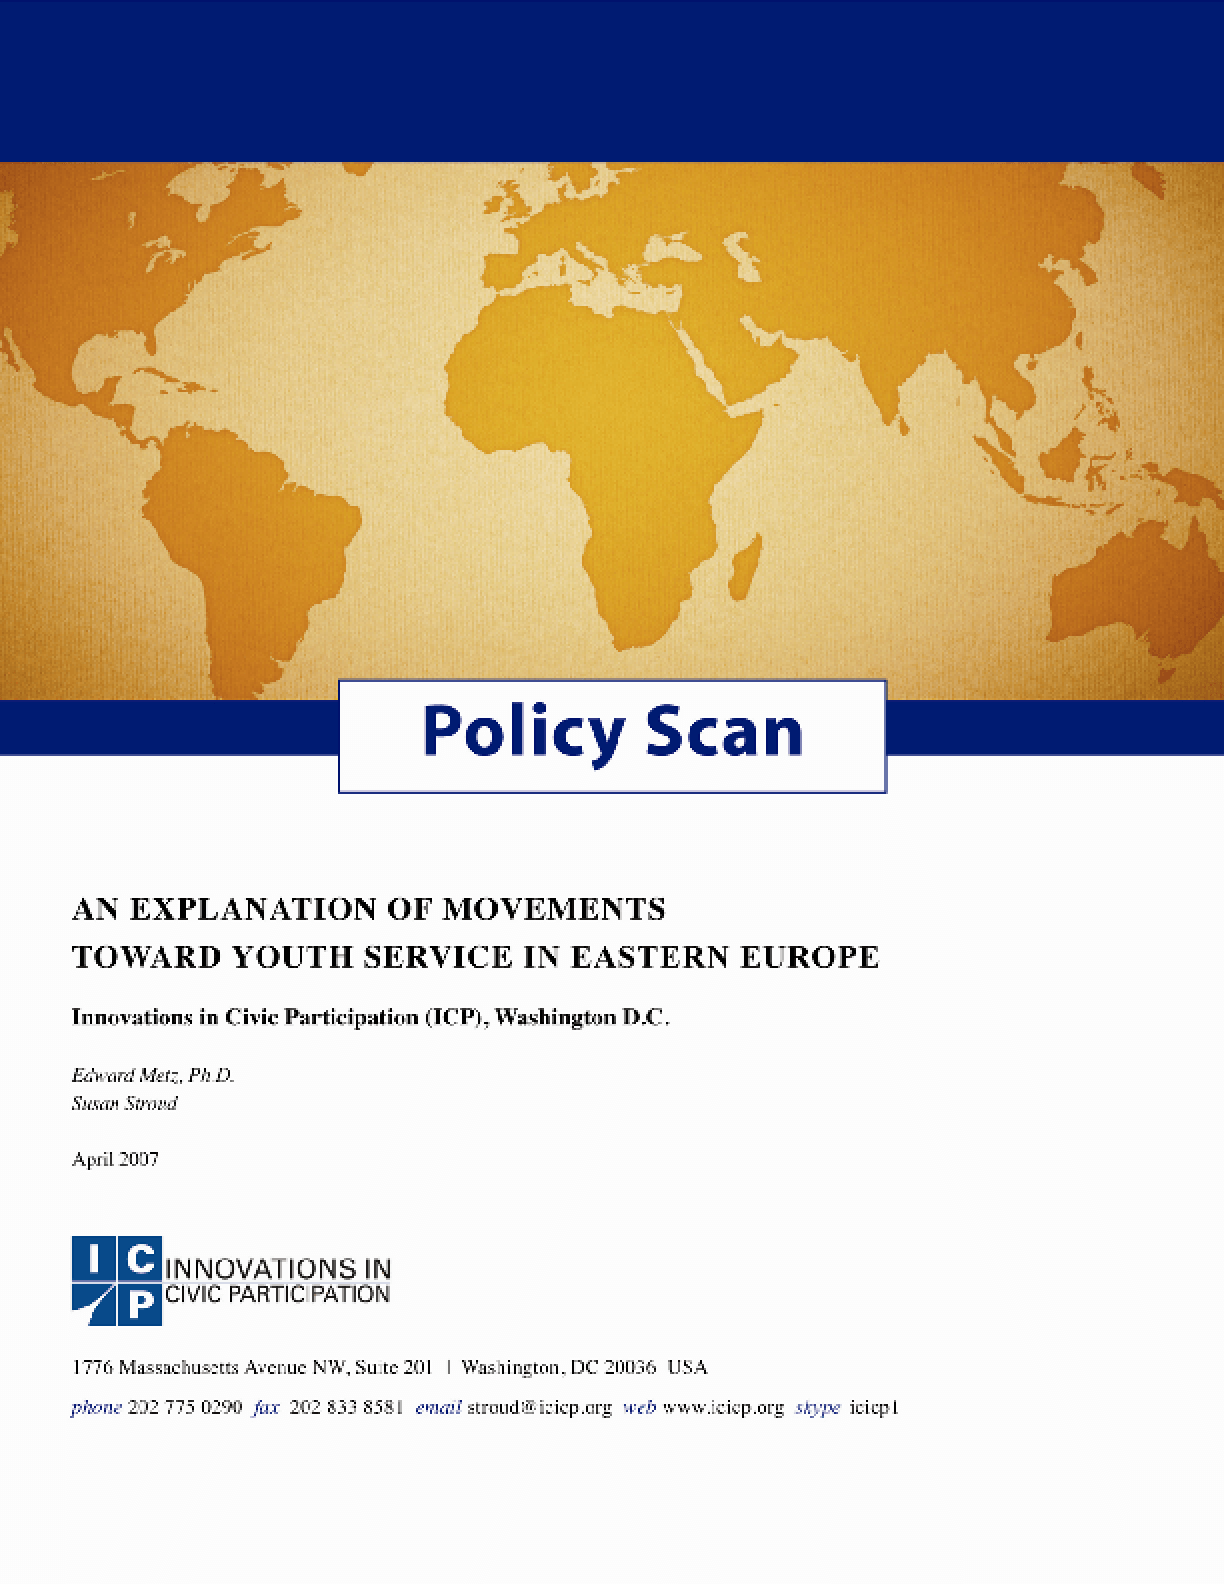 Policy Scan: An Explanation Of Movements Towards Youth Service In Eastern Europe